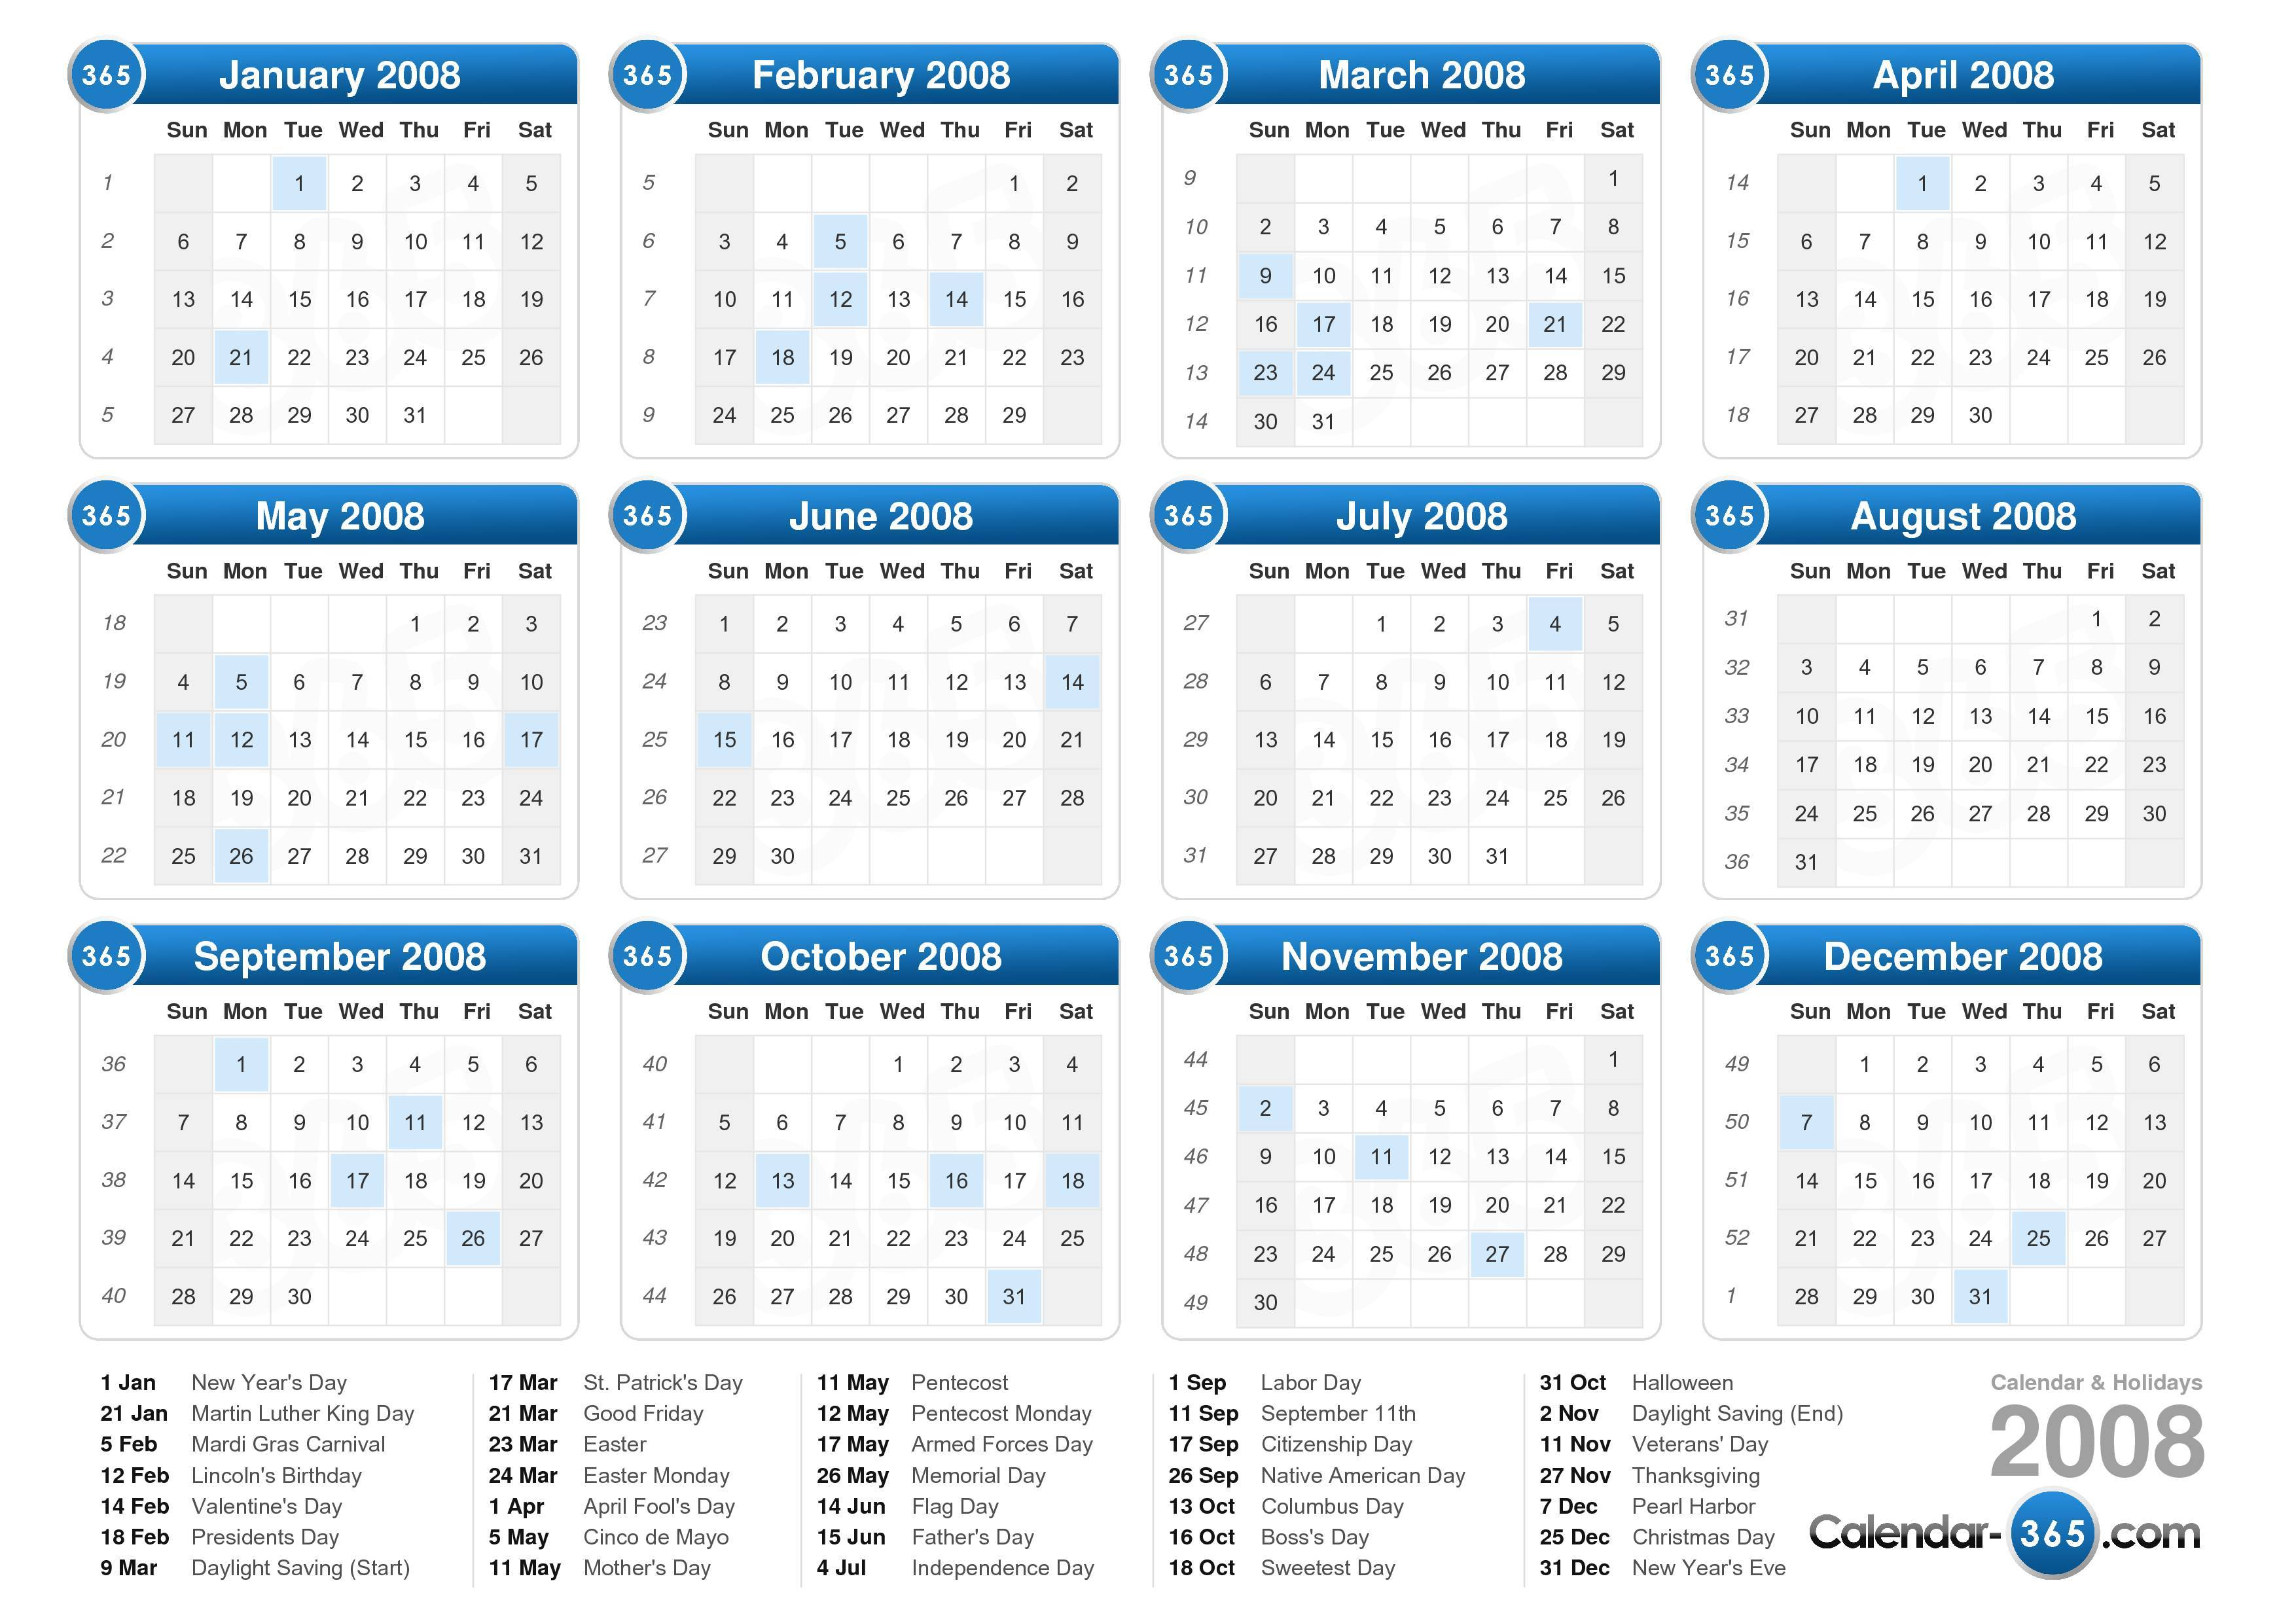 Download the 2008 Calendar with holidays . (Landscape format - 1 Page)